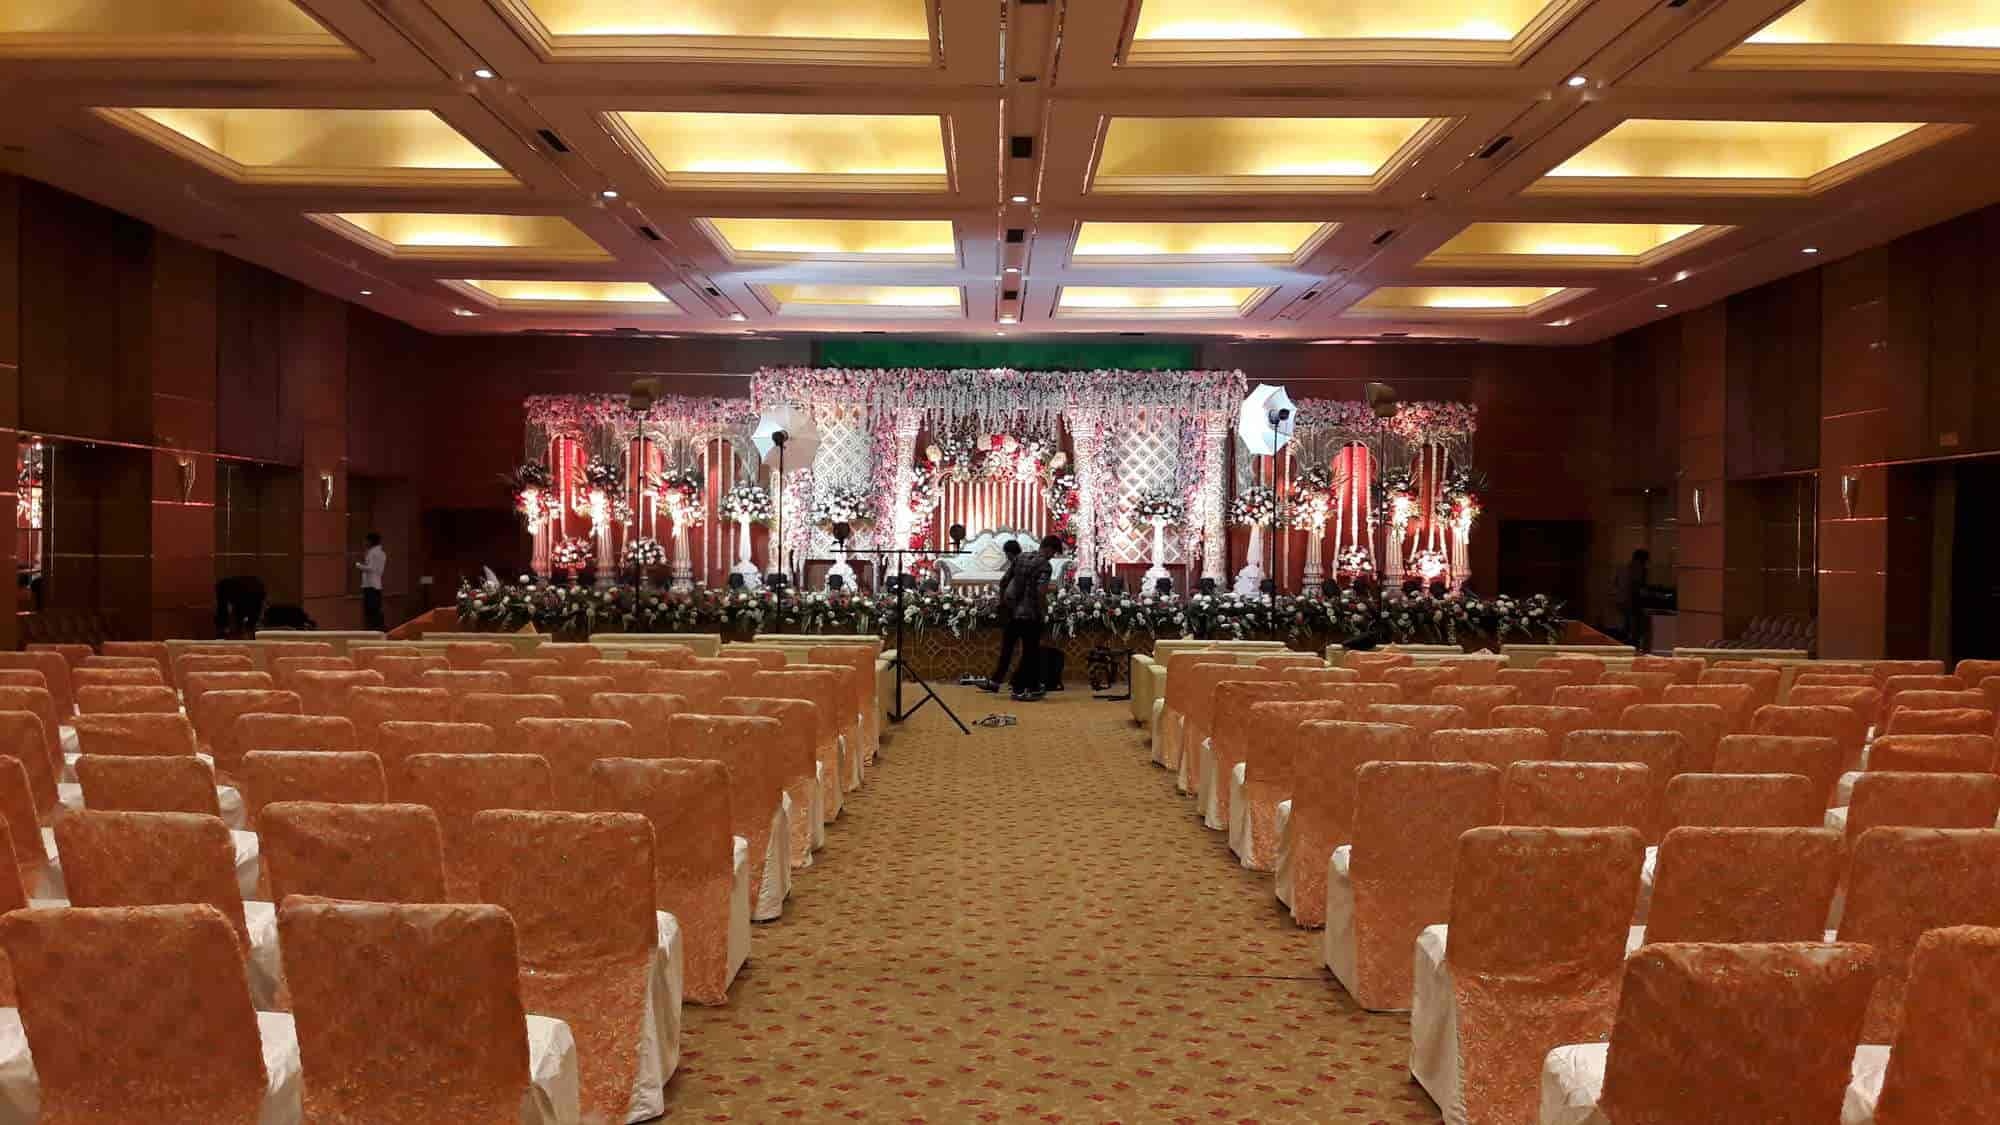 Saroj Tent And Events Tonk Road Banquet Halls In Jaipur Justdial